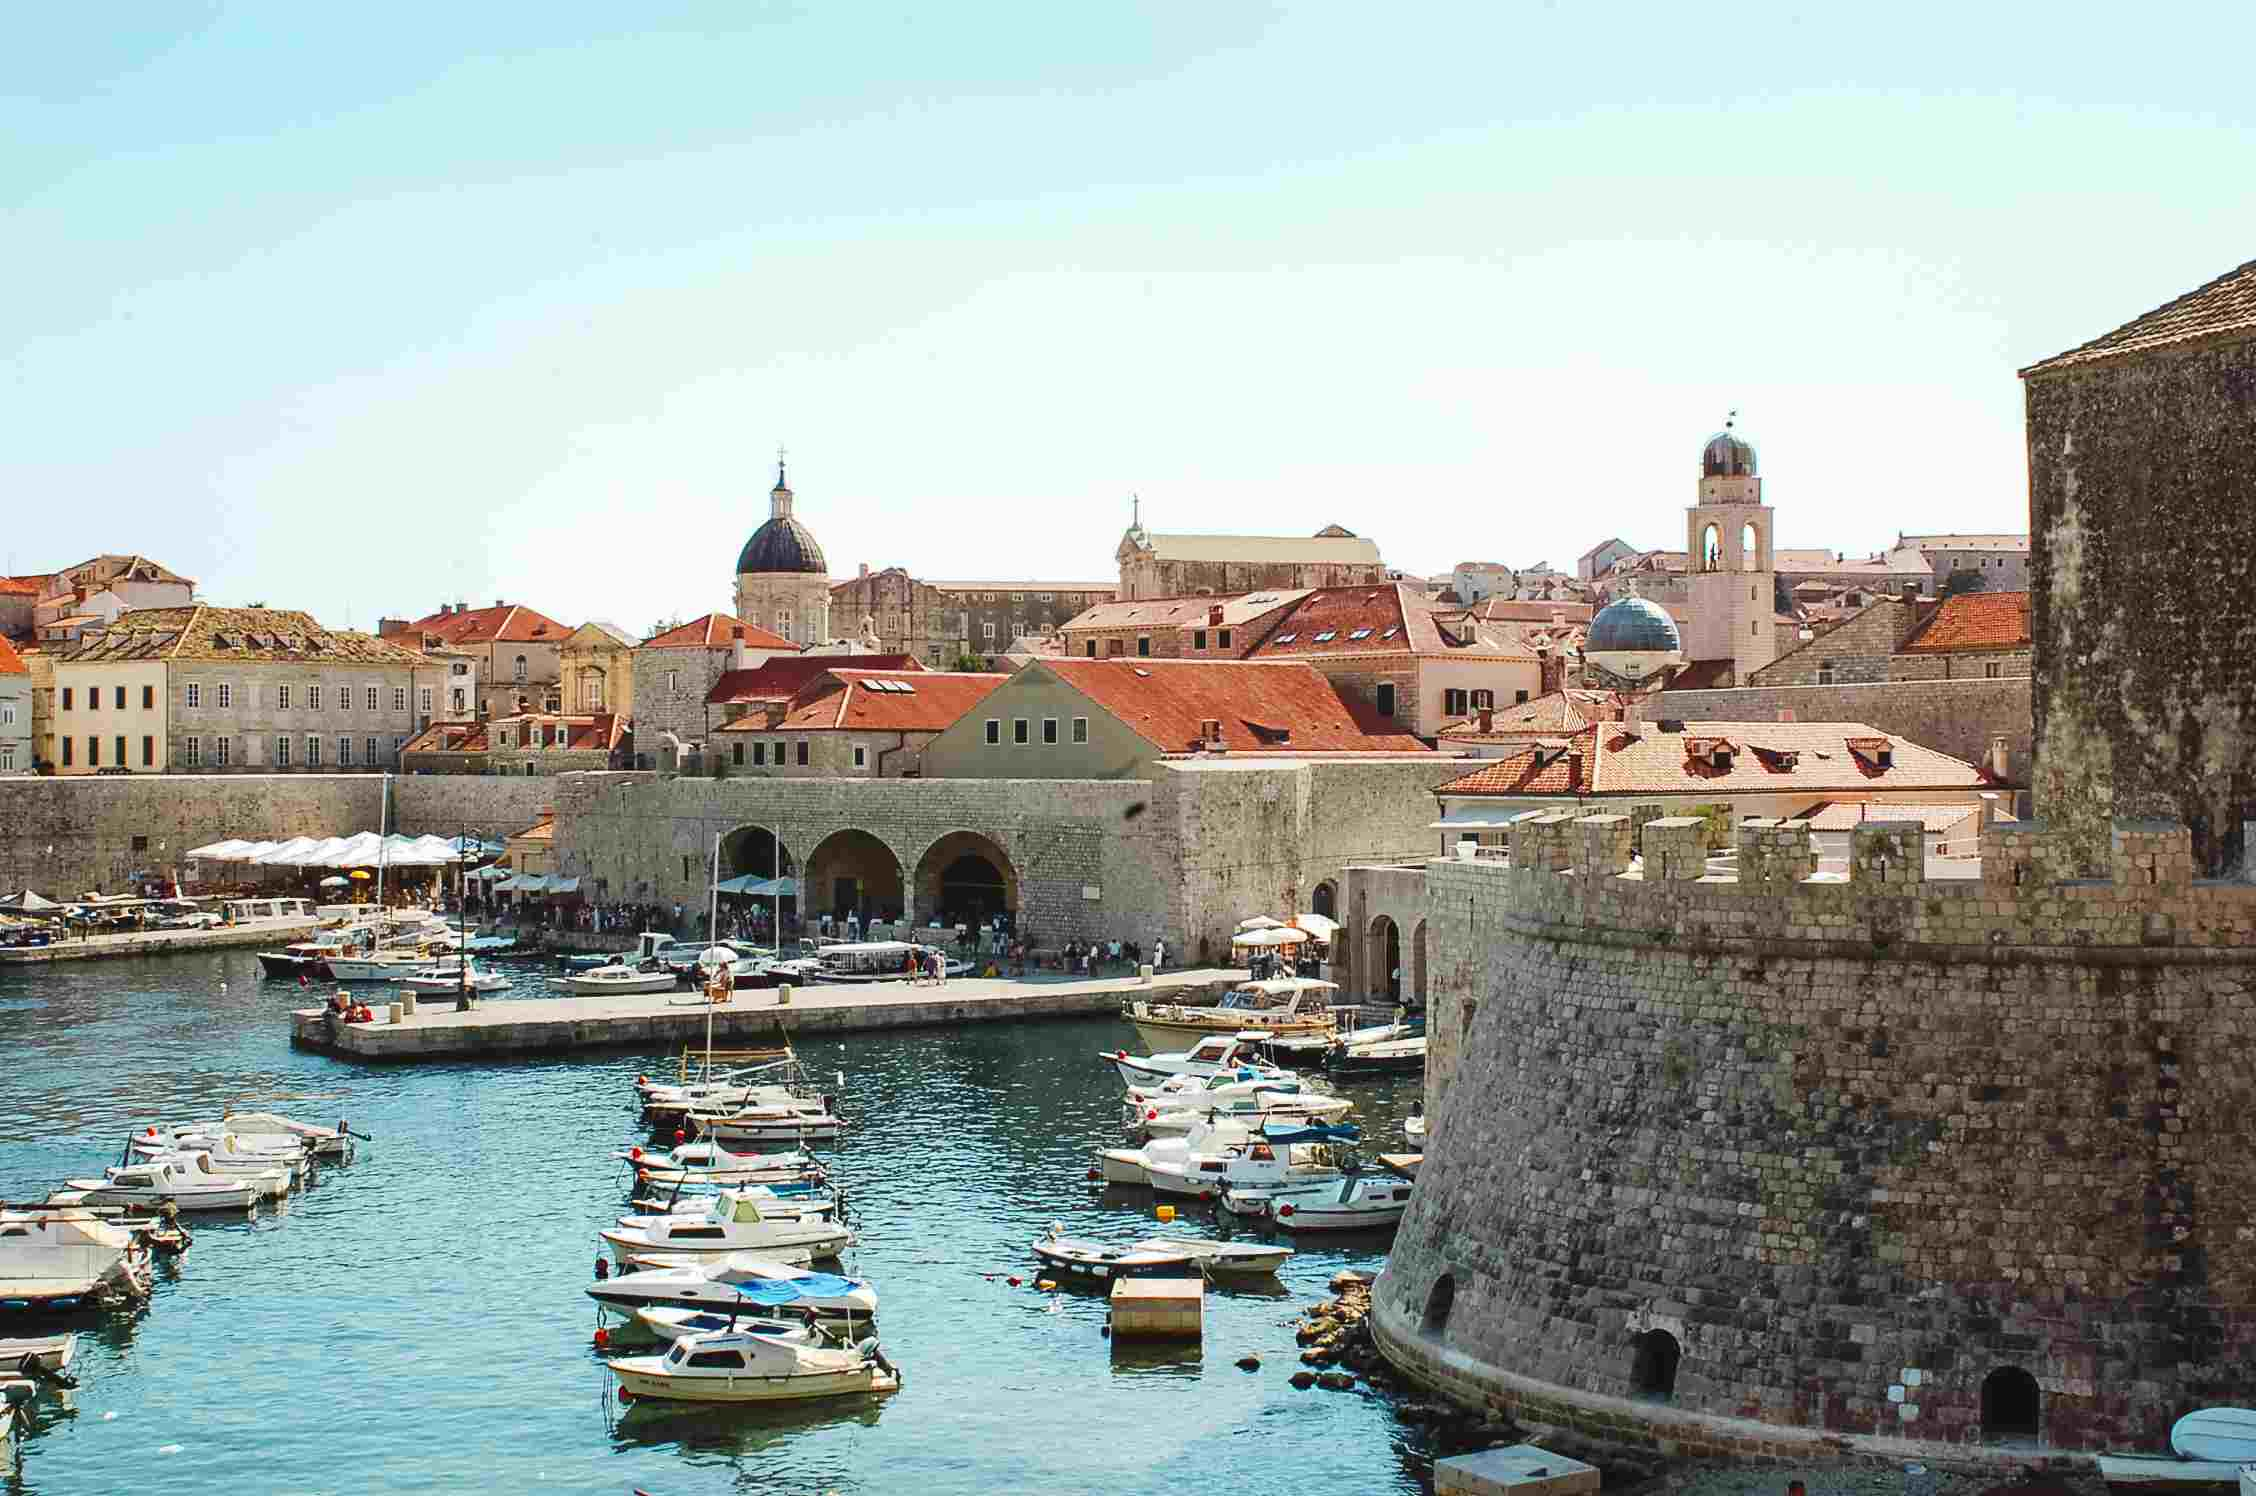 The old fortress and harbor in Dubrovnik